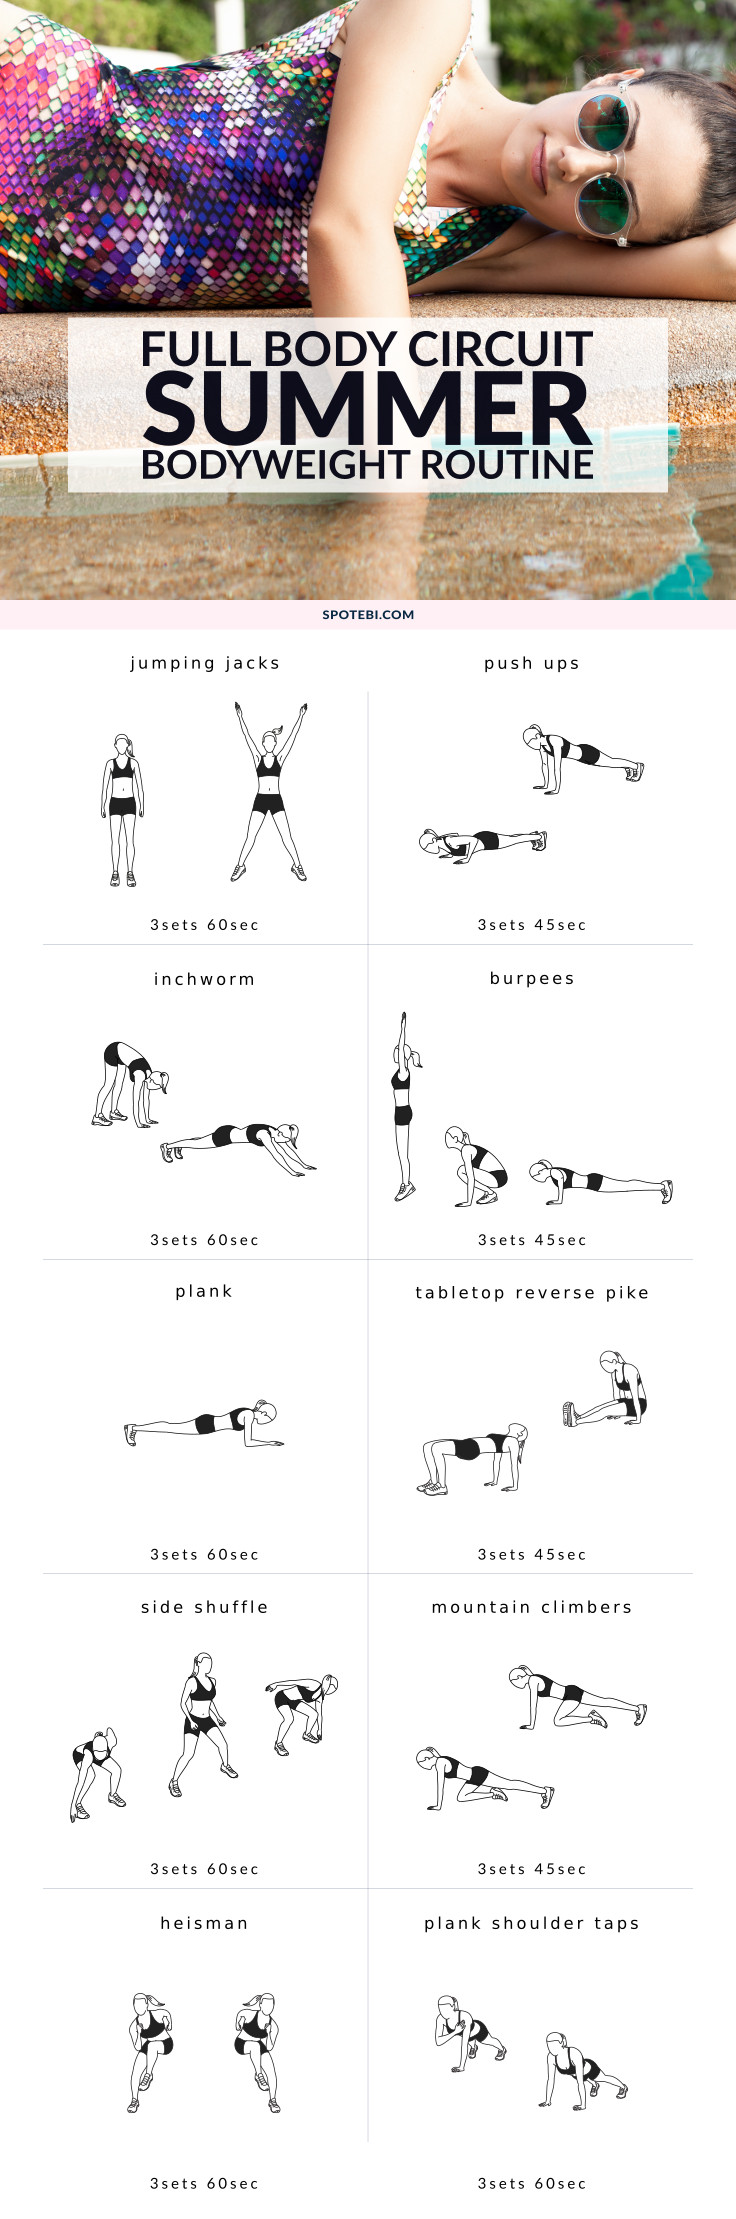 Get ready for the beach with these 10 calorie blasting moves! A summer body workout with butt lifting, core strengthening, and arm sculpting exercises. Boost your metabolism and get your body in shape for bikini season! https://www.spotebi.com/workout-routines/summer-body-workout-full-body-bodyweight-circuit/